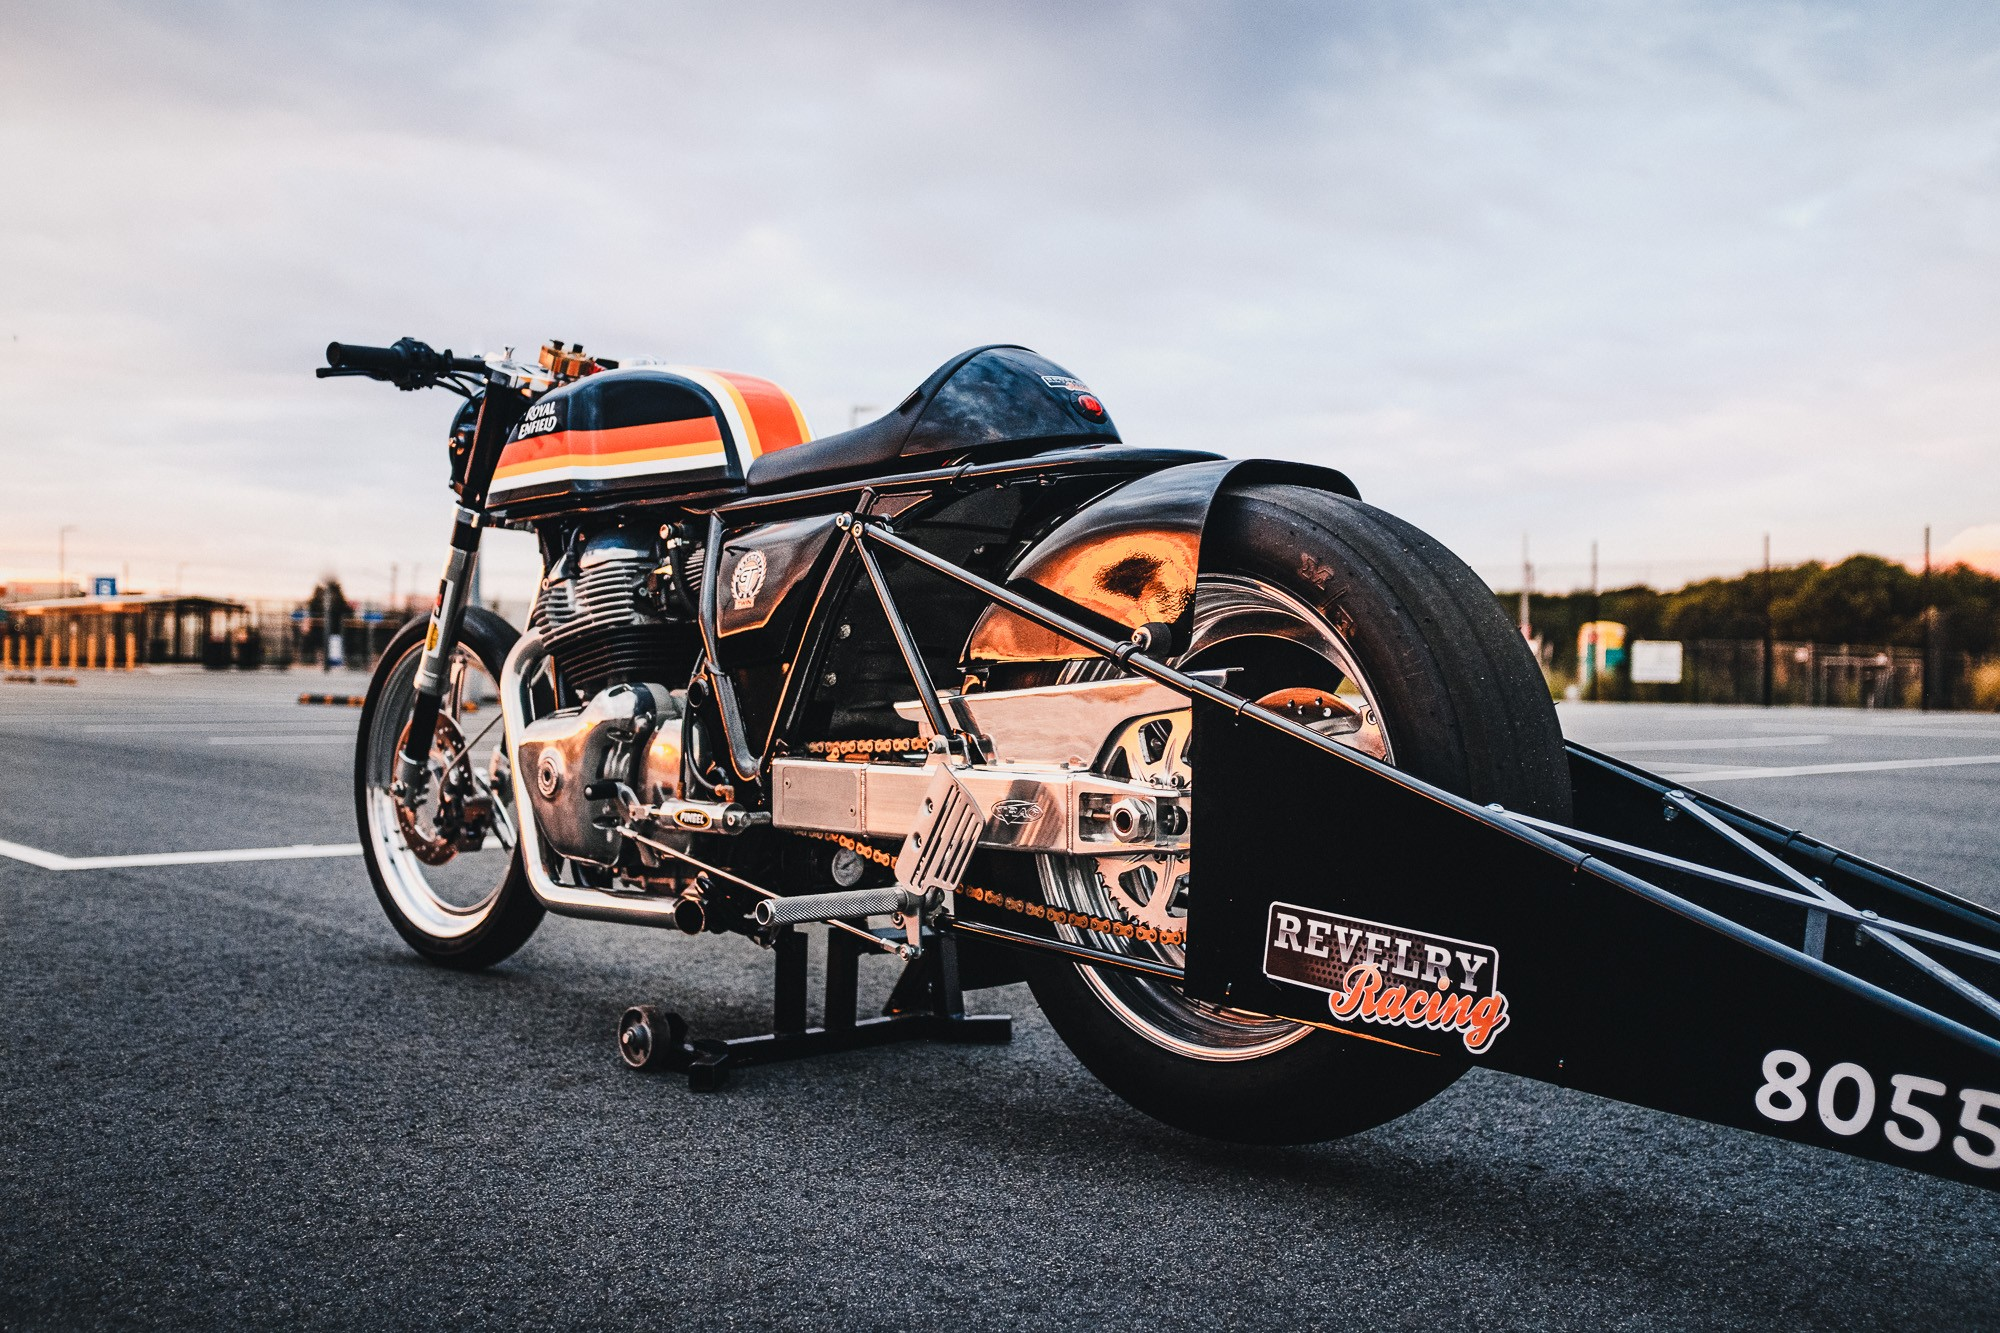 A royal Enfiled 650 Twin drag bike in a Sydney car park at sunset